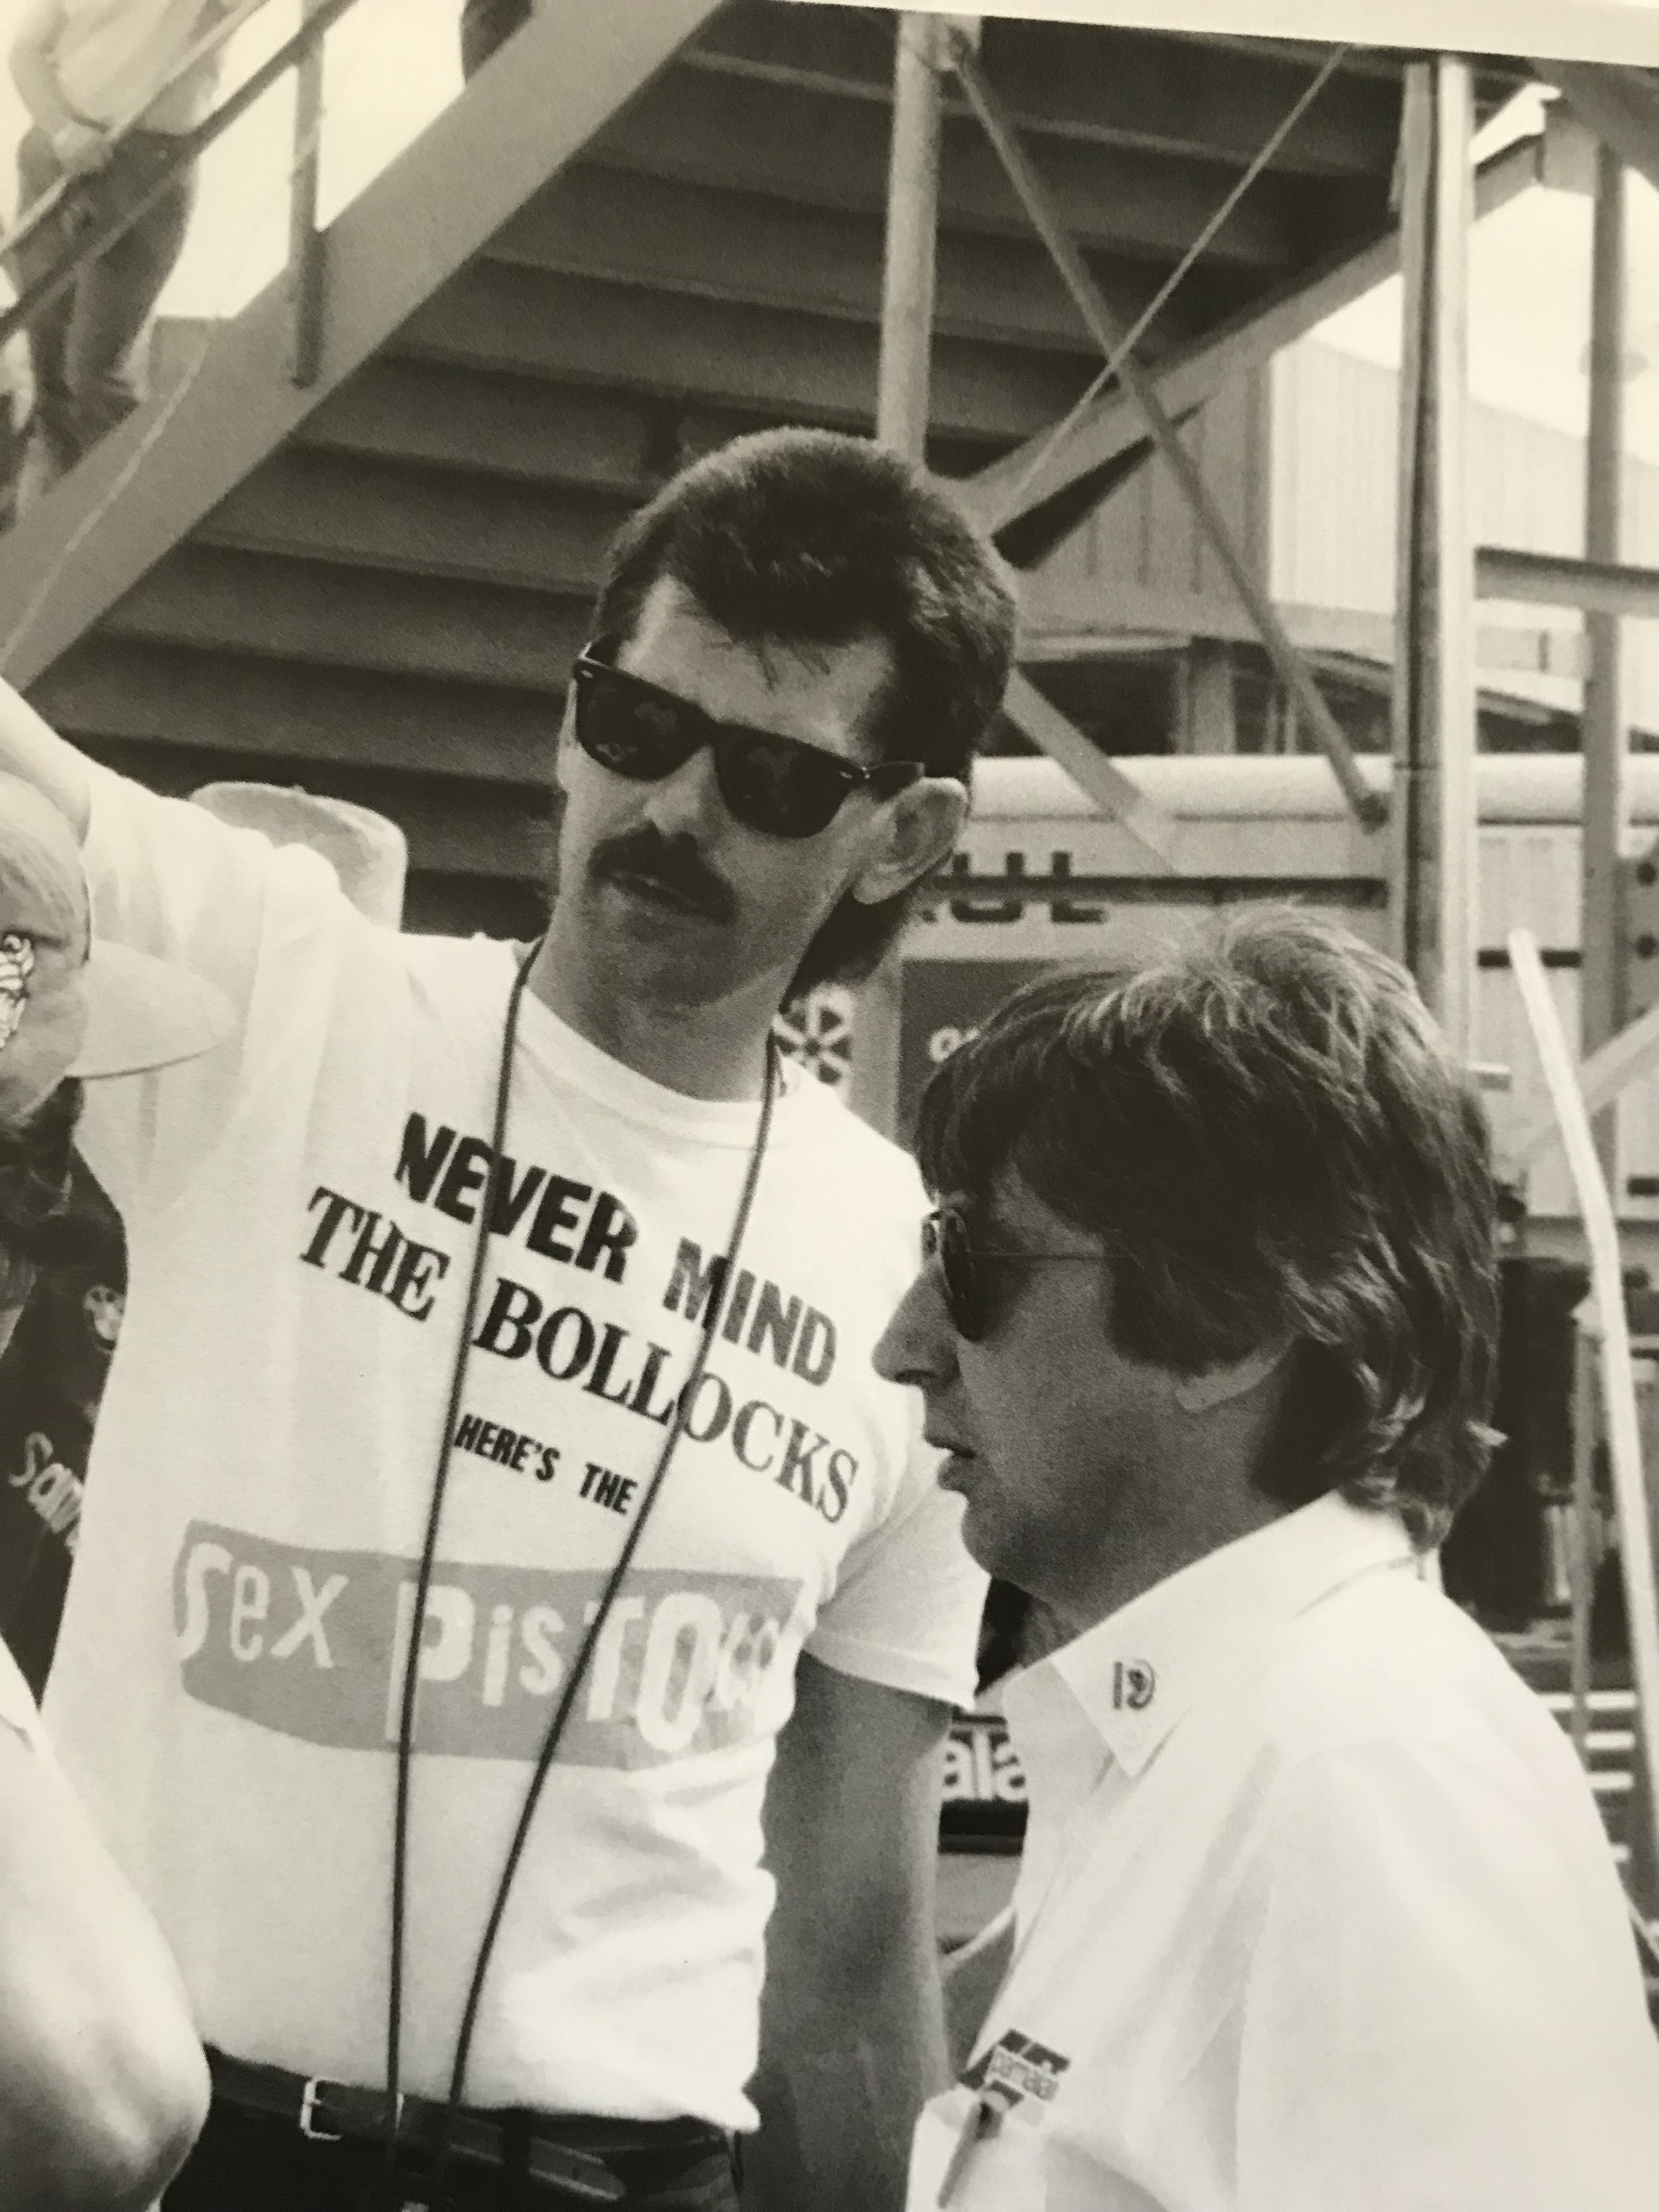 Gordon Murray and Bernie Ecclestone